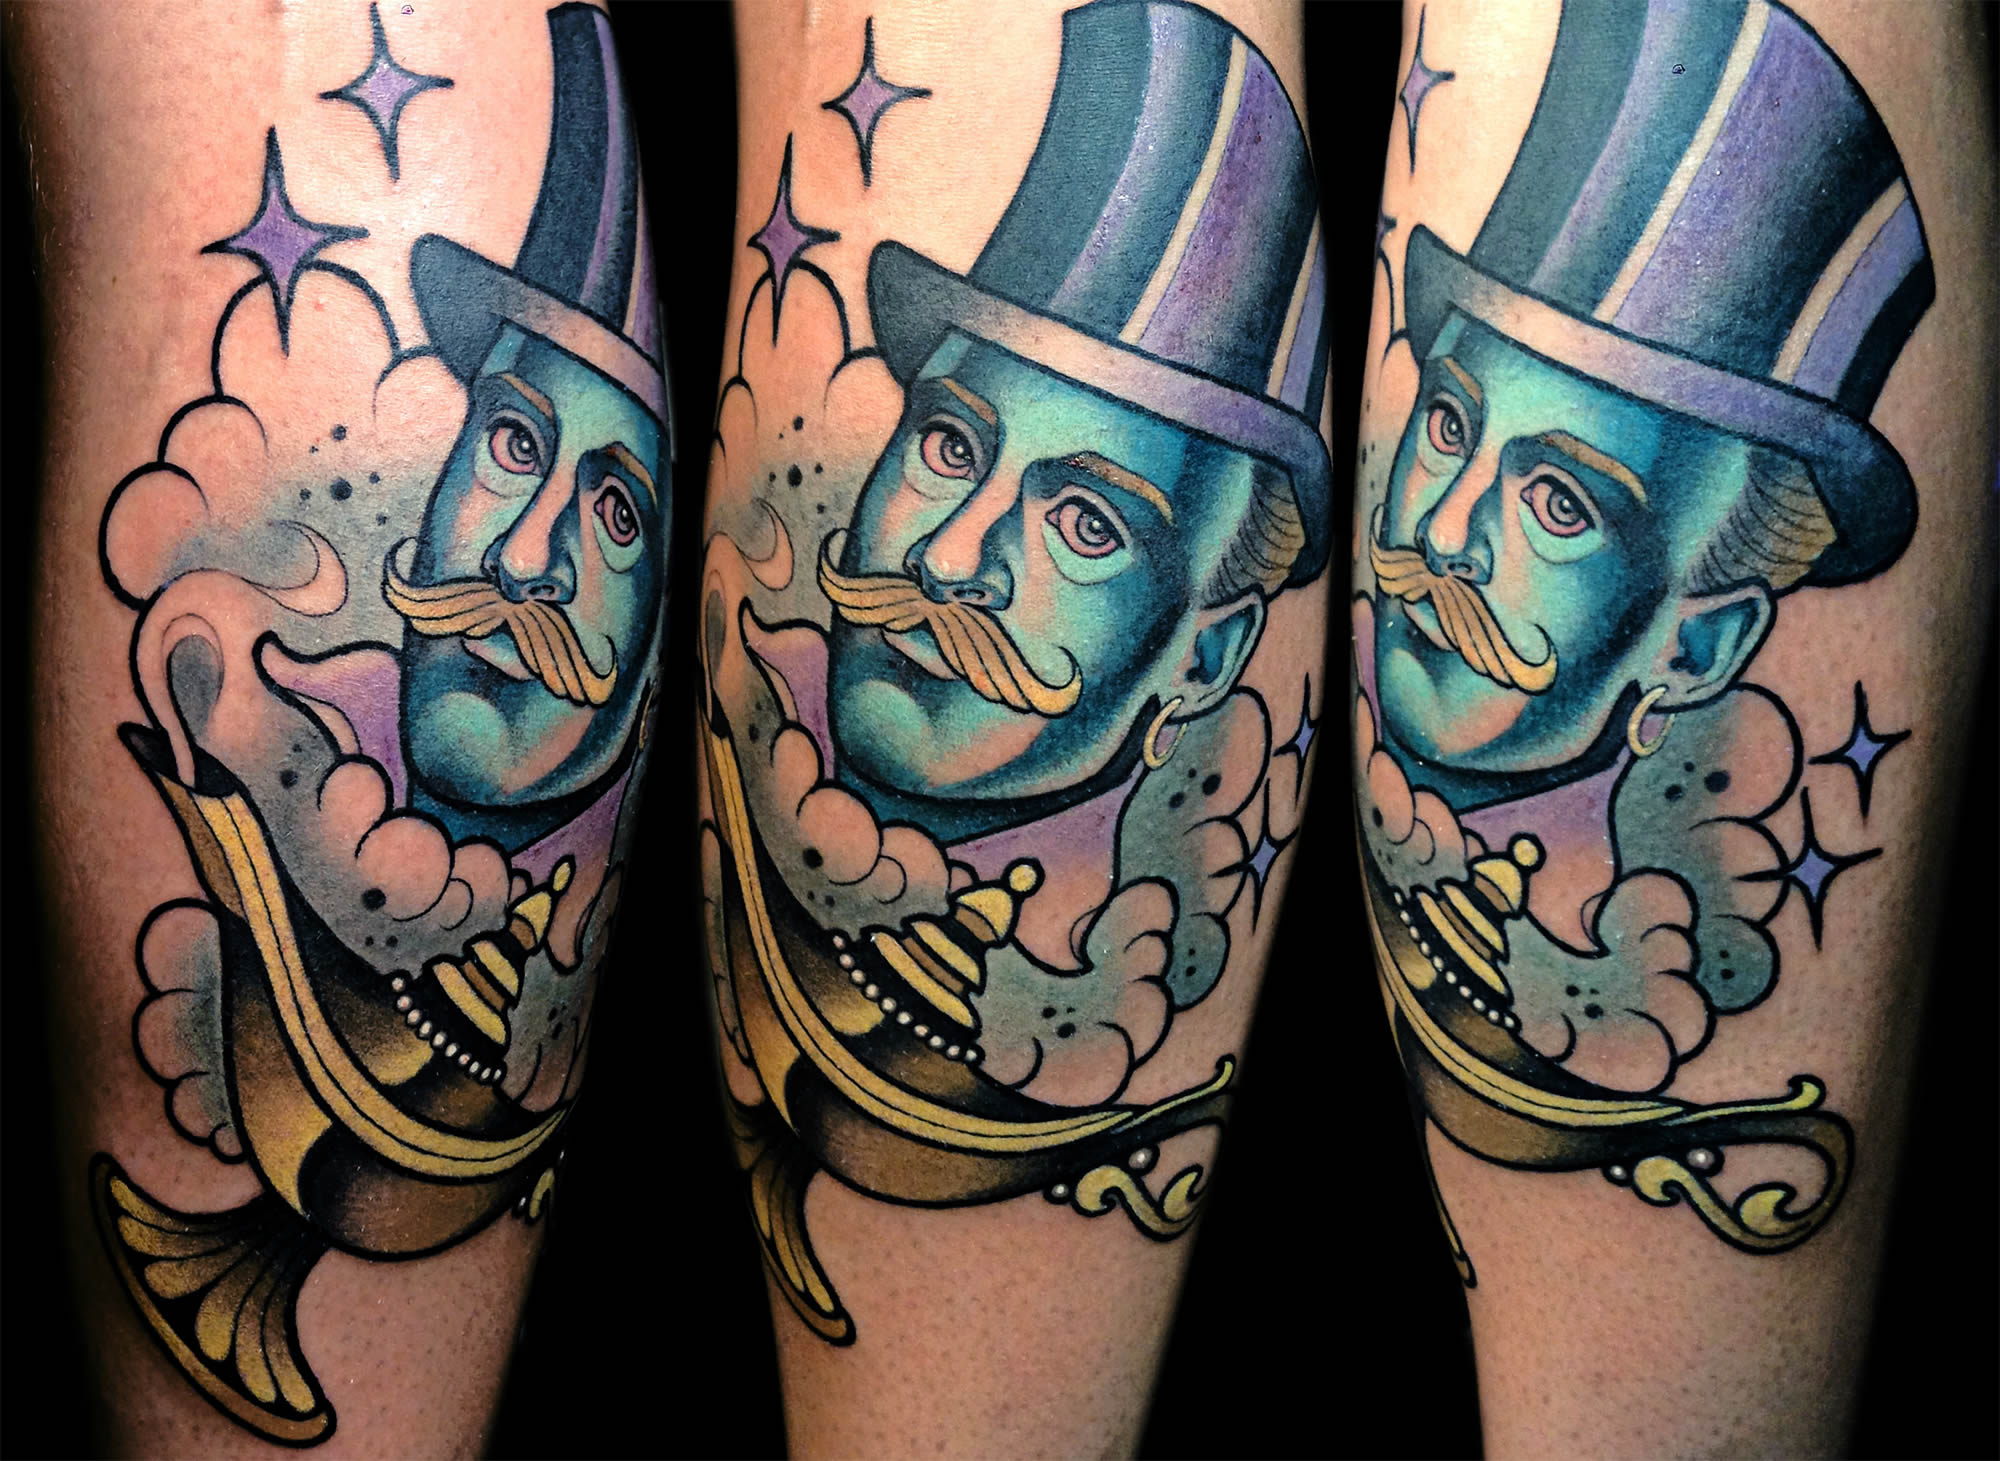 Fanciful Color Tattoos by Myra Brodsky